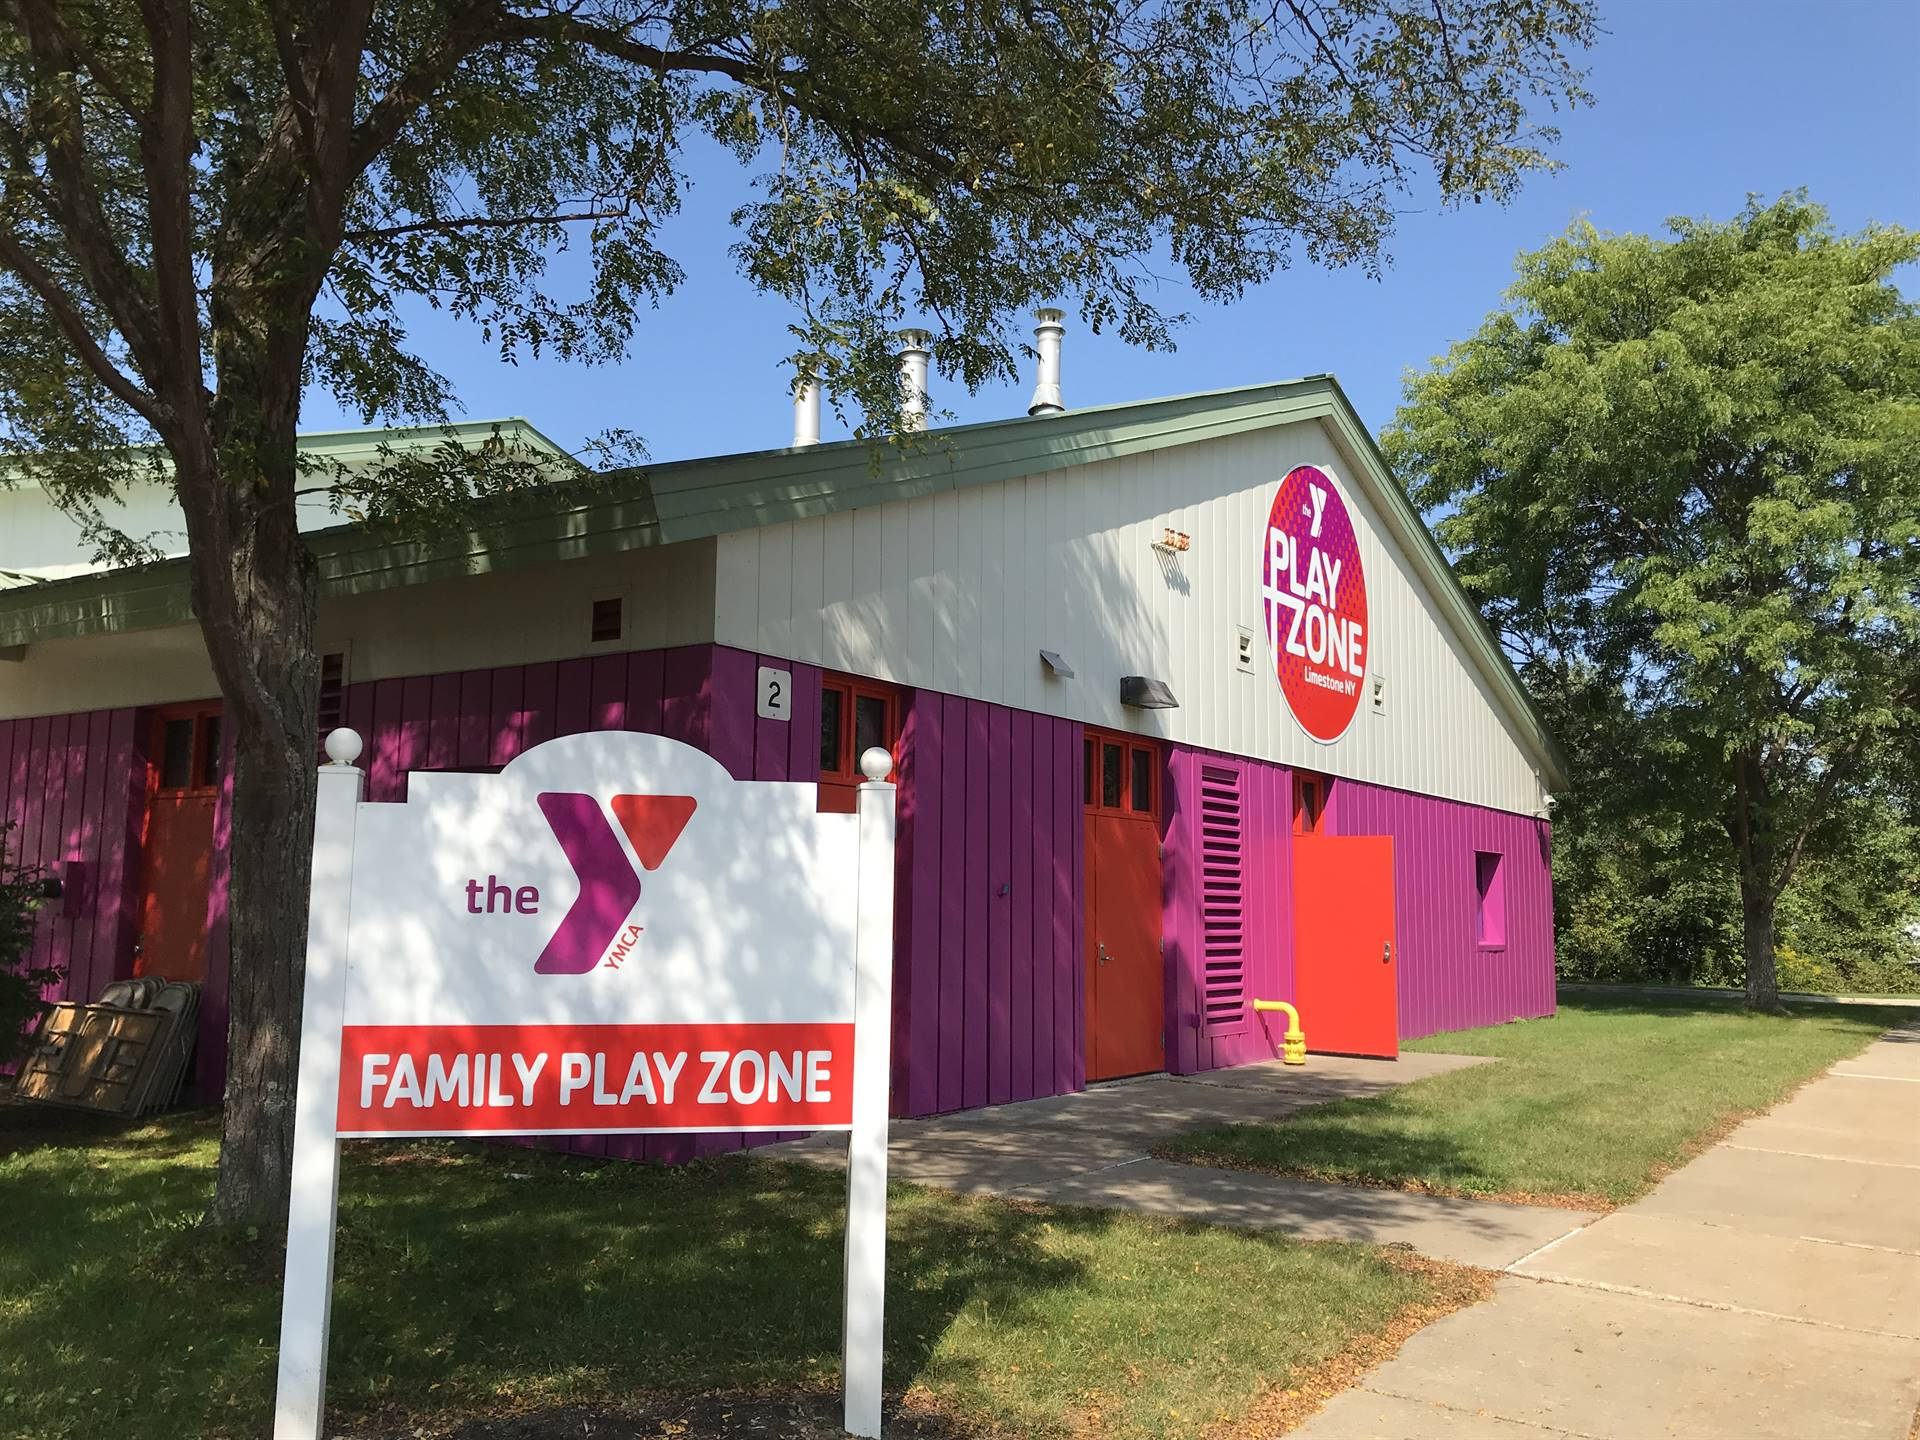 front of play zone building